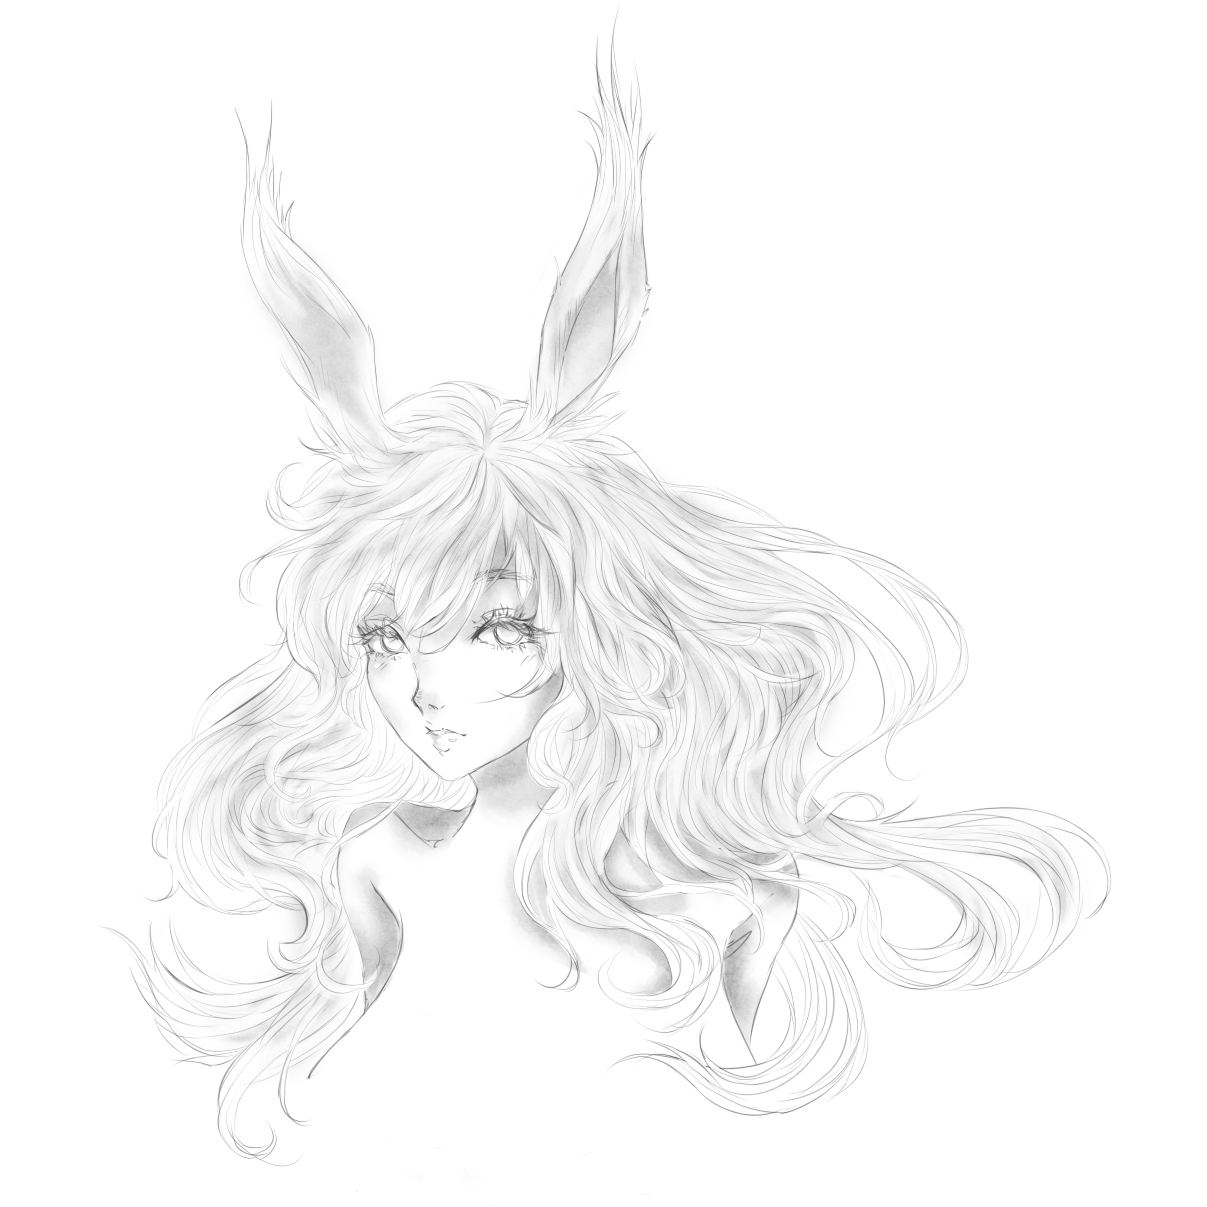 Made A Viera Sketch For The Upcoming Expansion Ffxiv